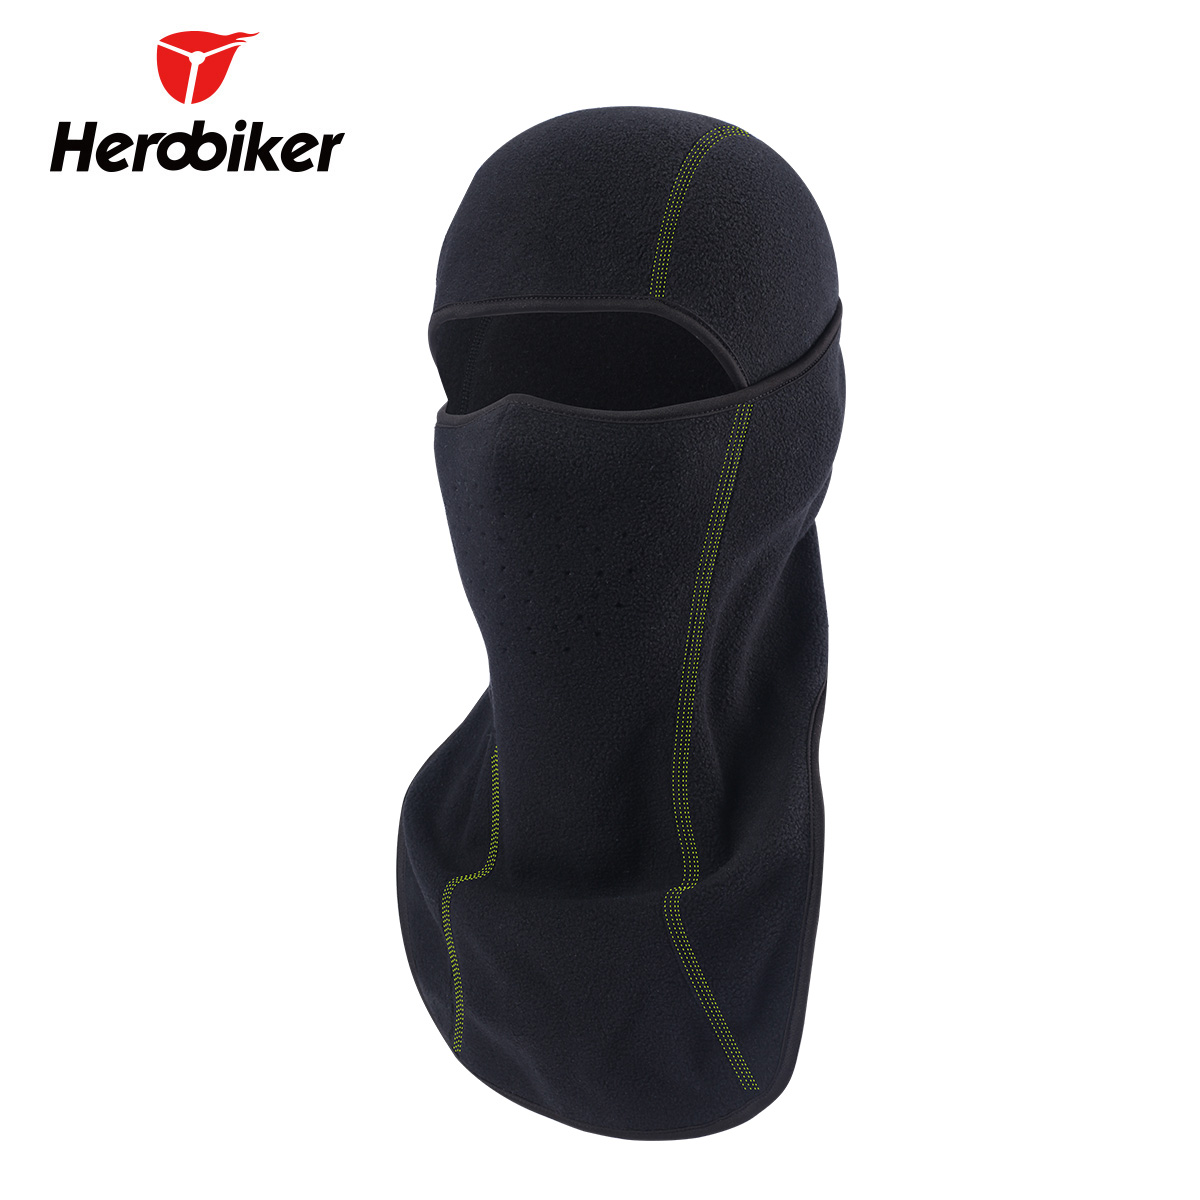 HEROBIKER Motorcycle Face Mask Shawl Autumn Winter Thermal Fleece Face Shield Mask Moto Balaclava Windproof Cycling Ski Scarf все цены